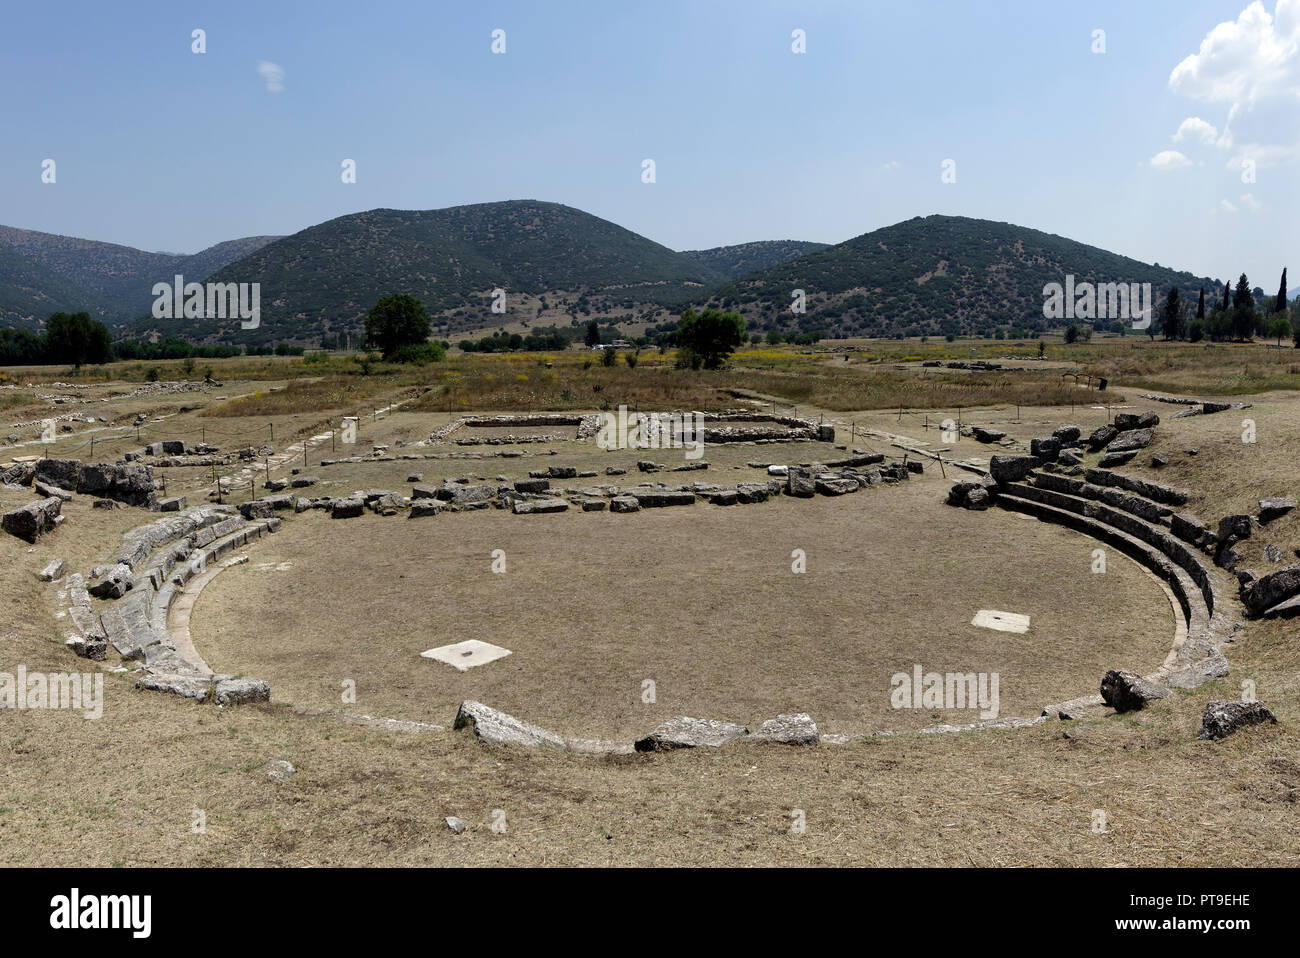 the 4th century bc ancient greek theatre located at the ancient